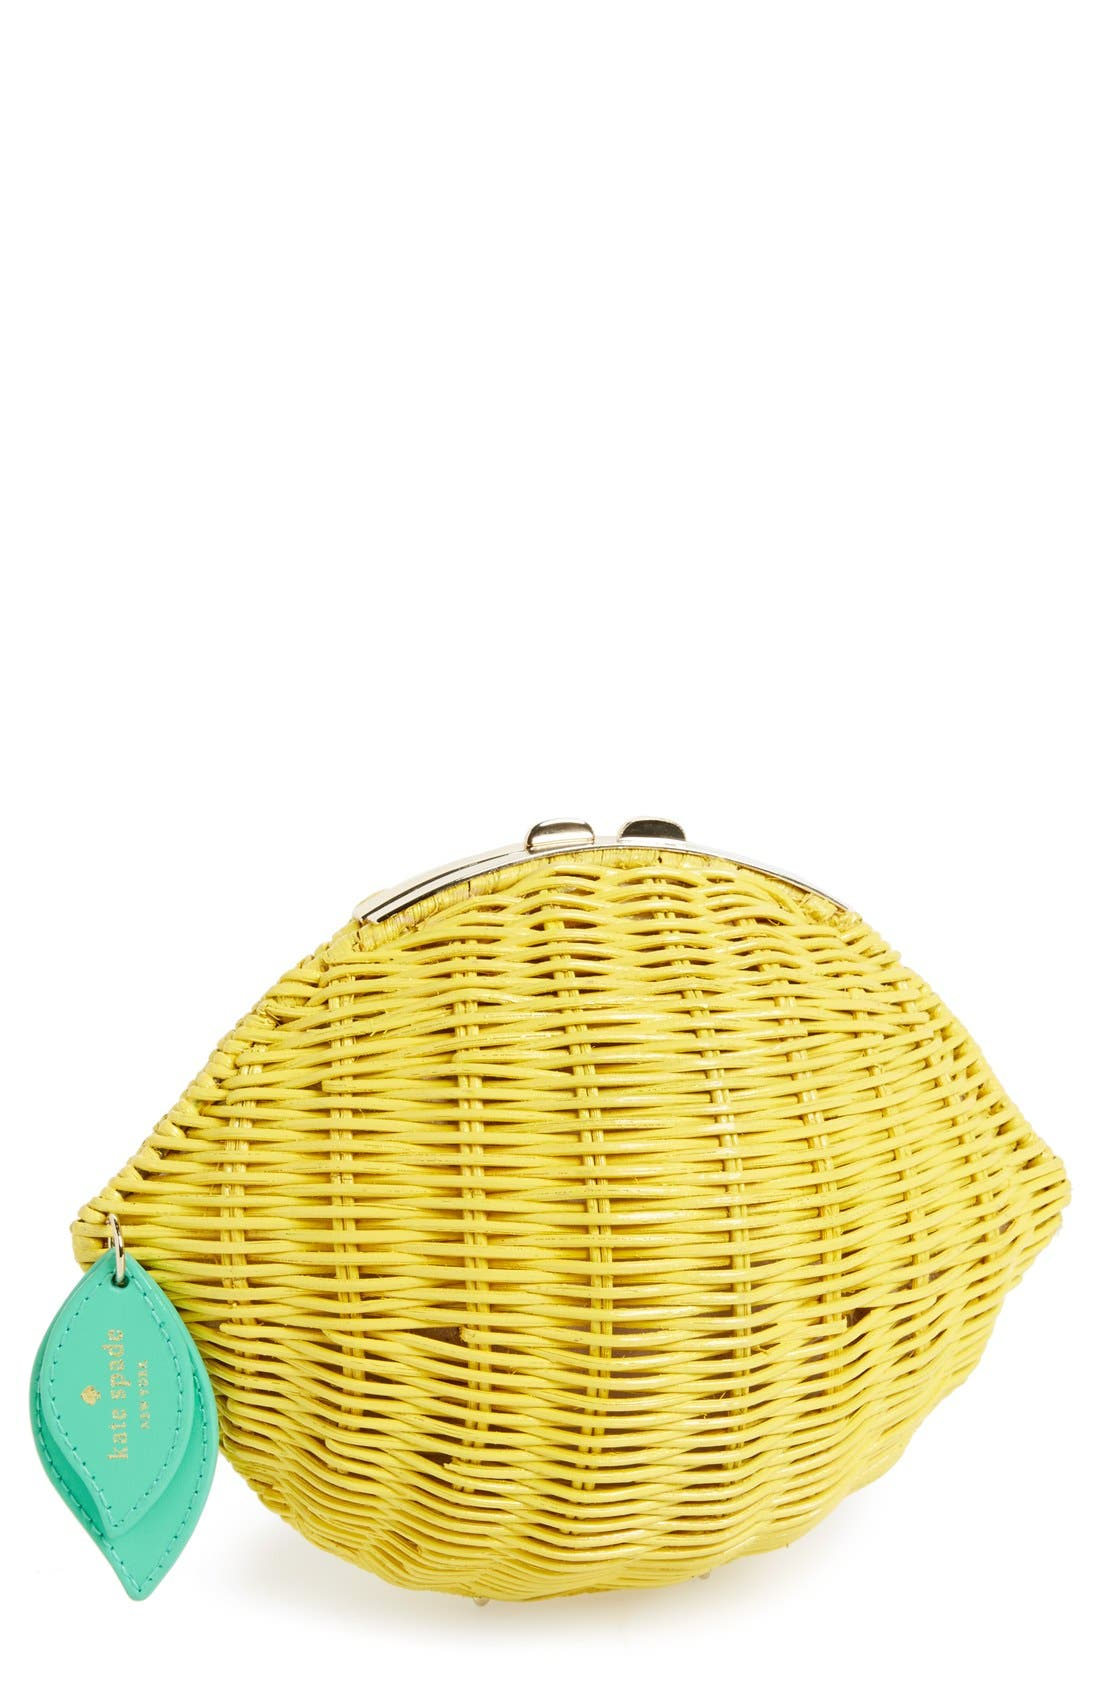 Main Image - kate spade new york 'vita riva' wicker lemon crossbody bag